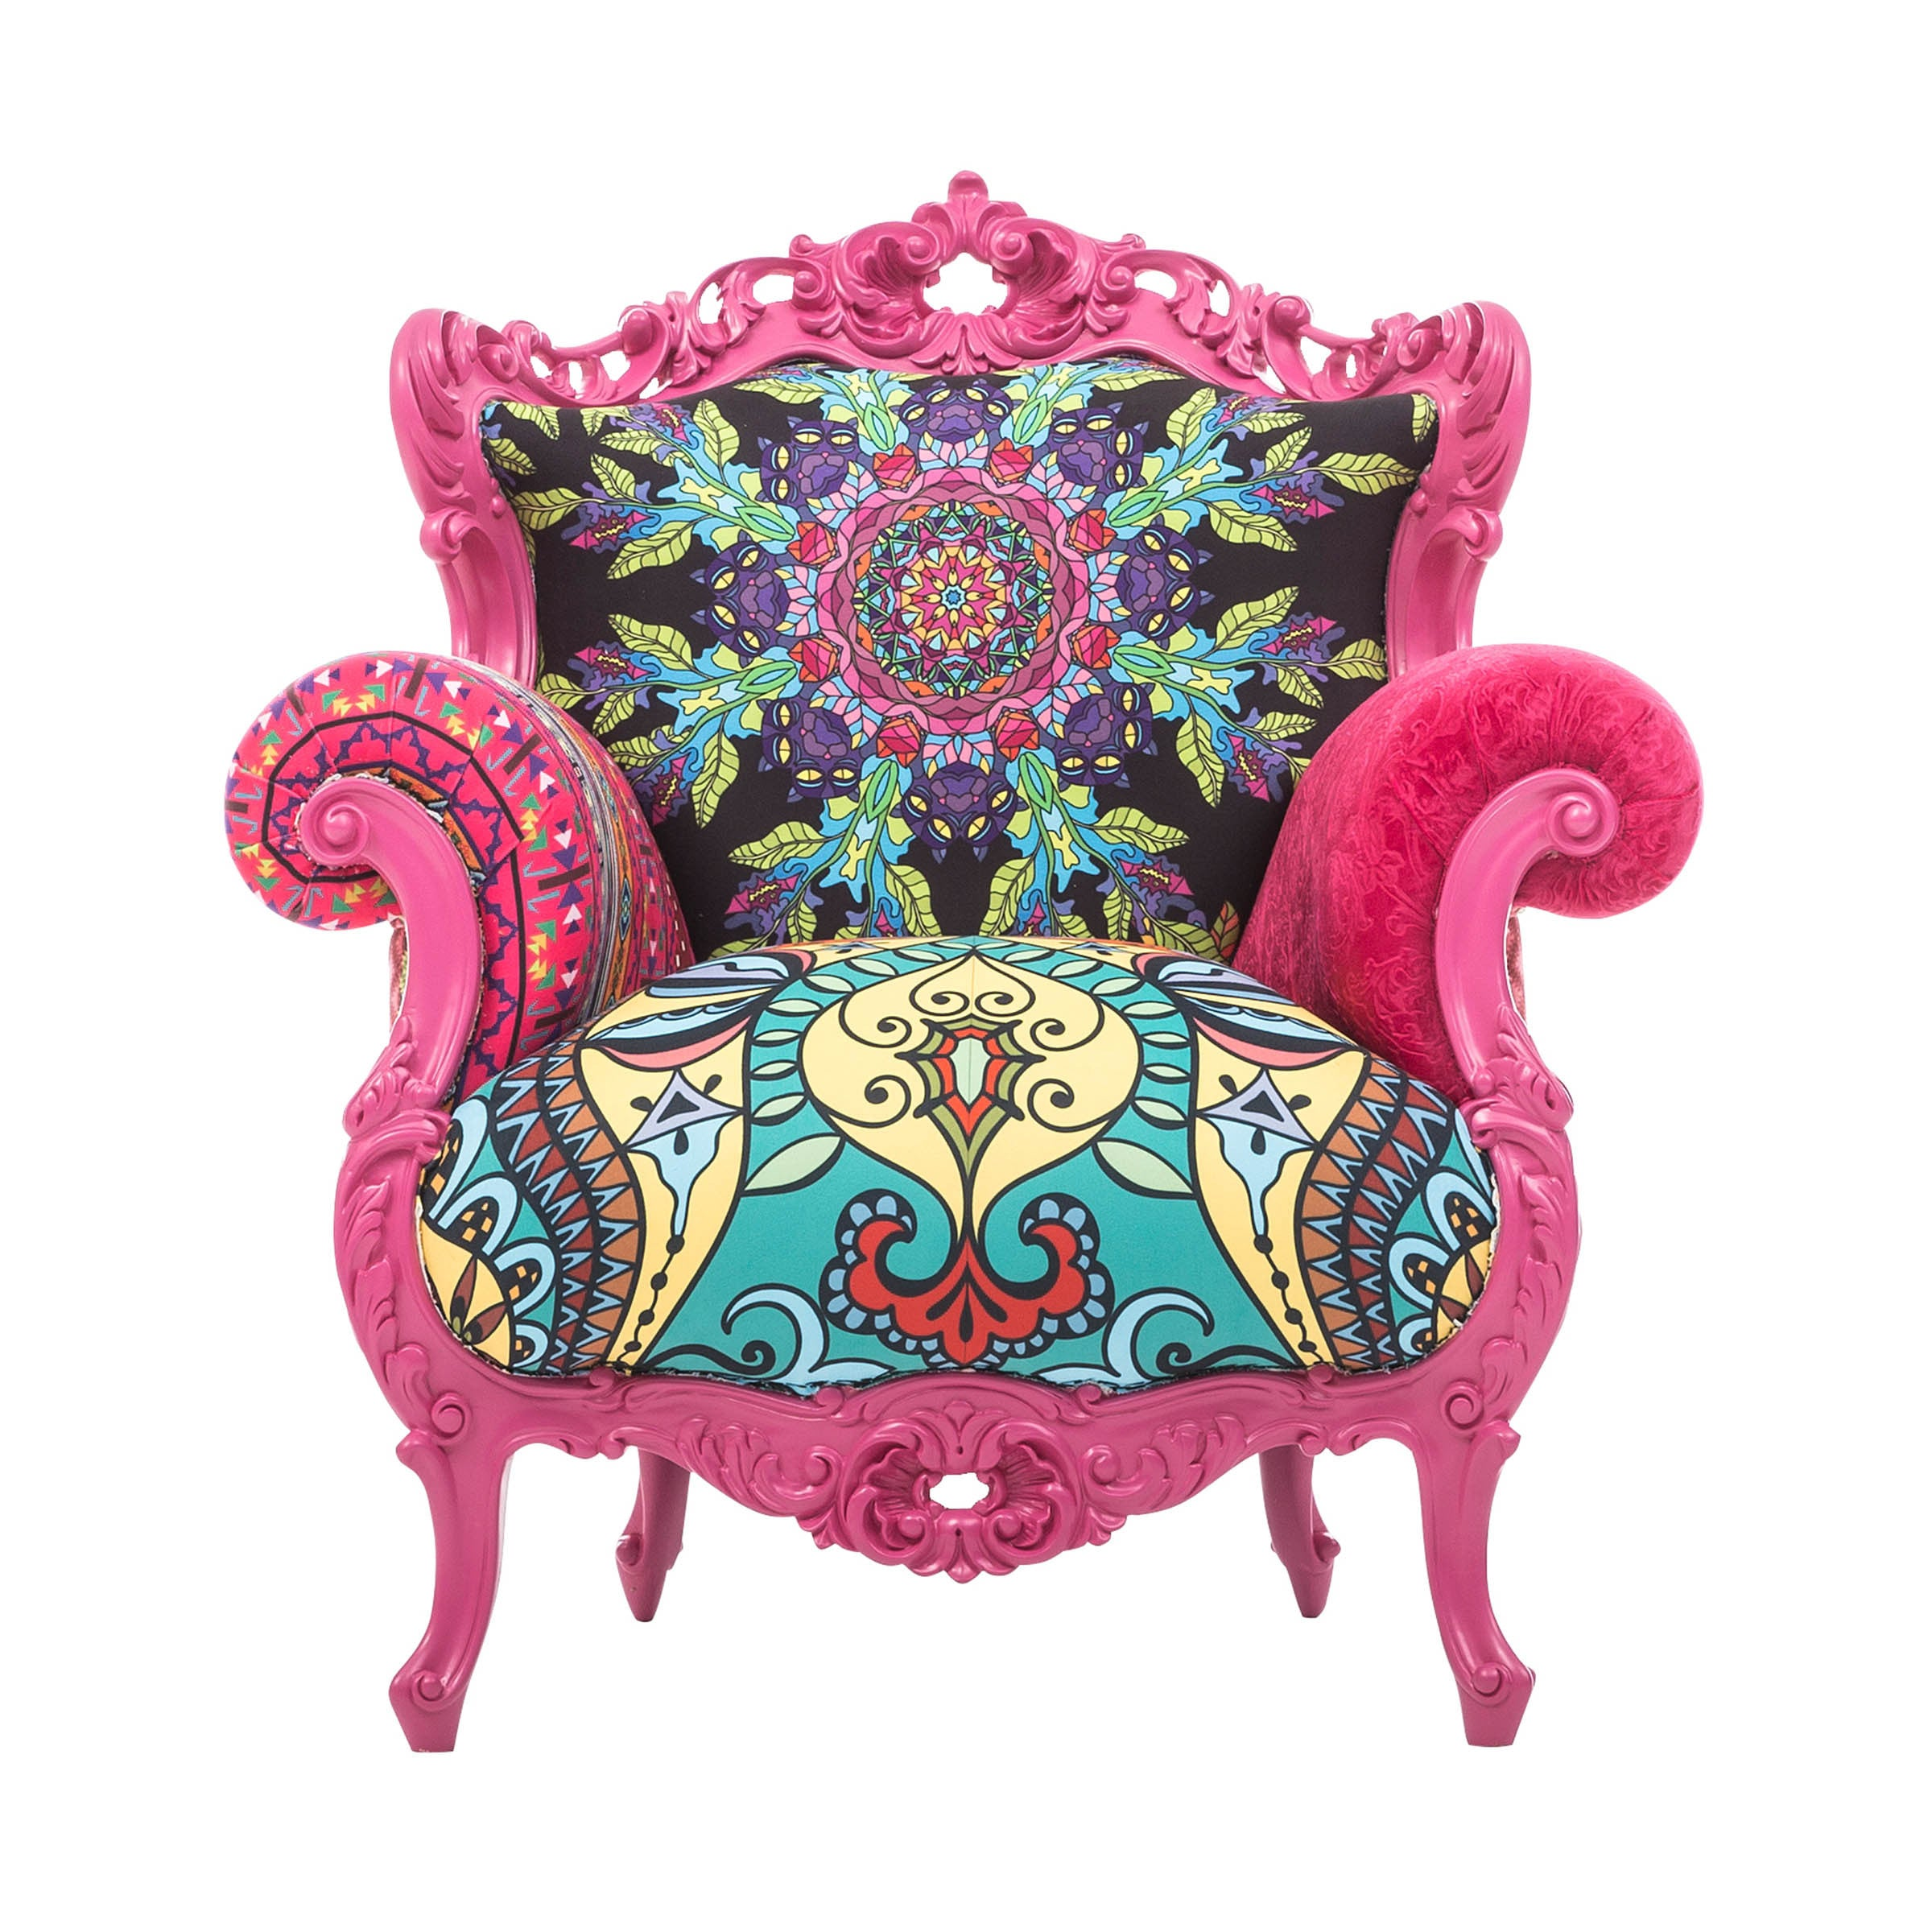 Relax Colorium Colorful armchair PIARM001 - ebarza